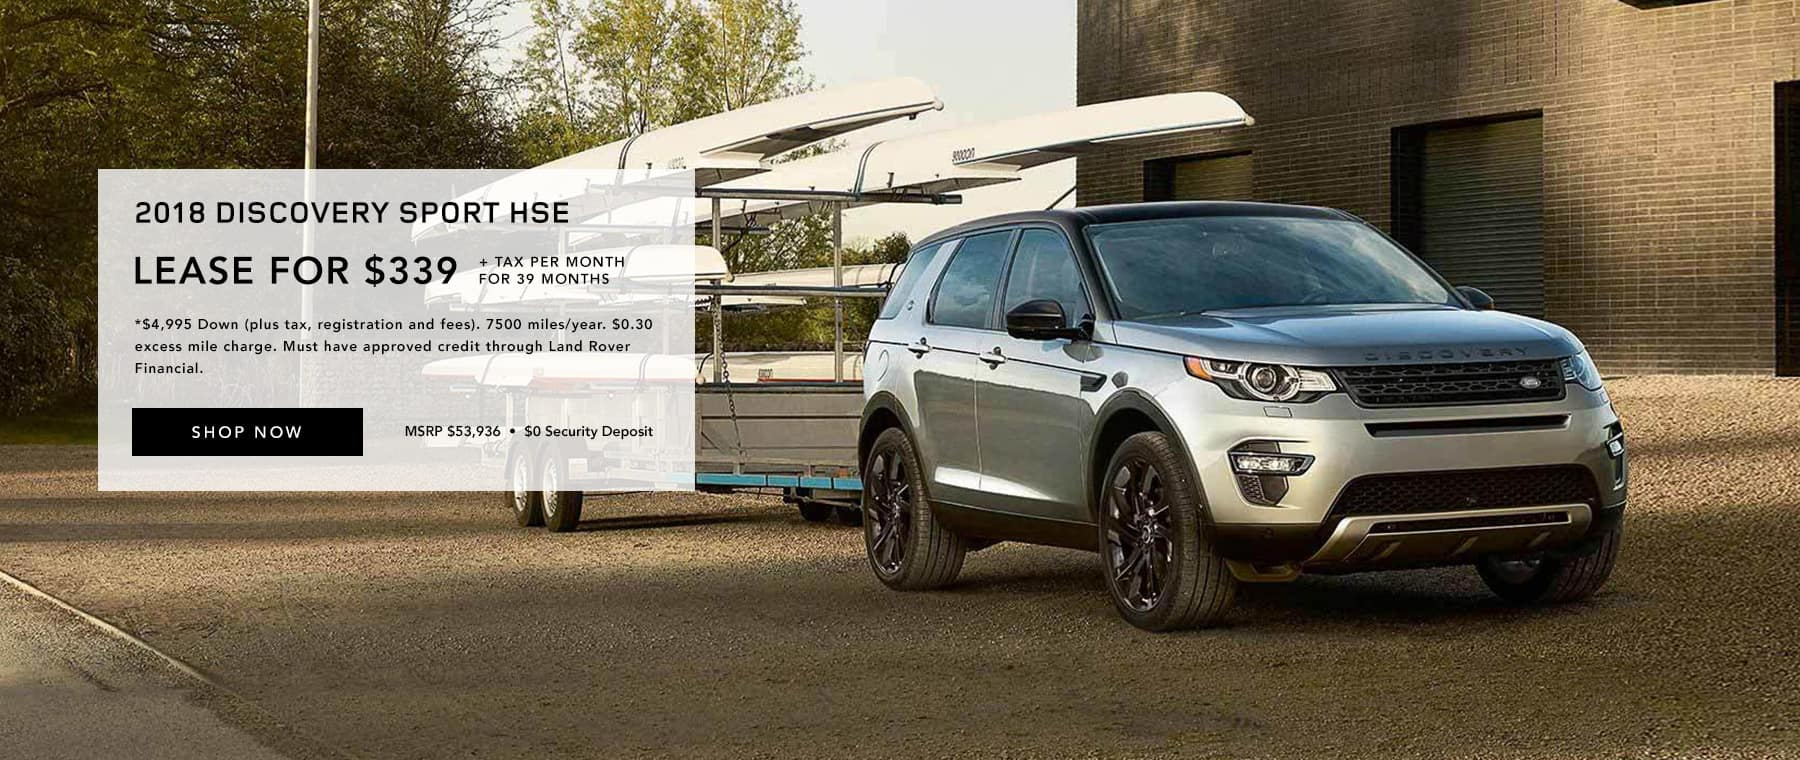 Discovery Sport Lease Offer